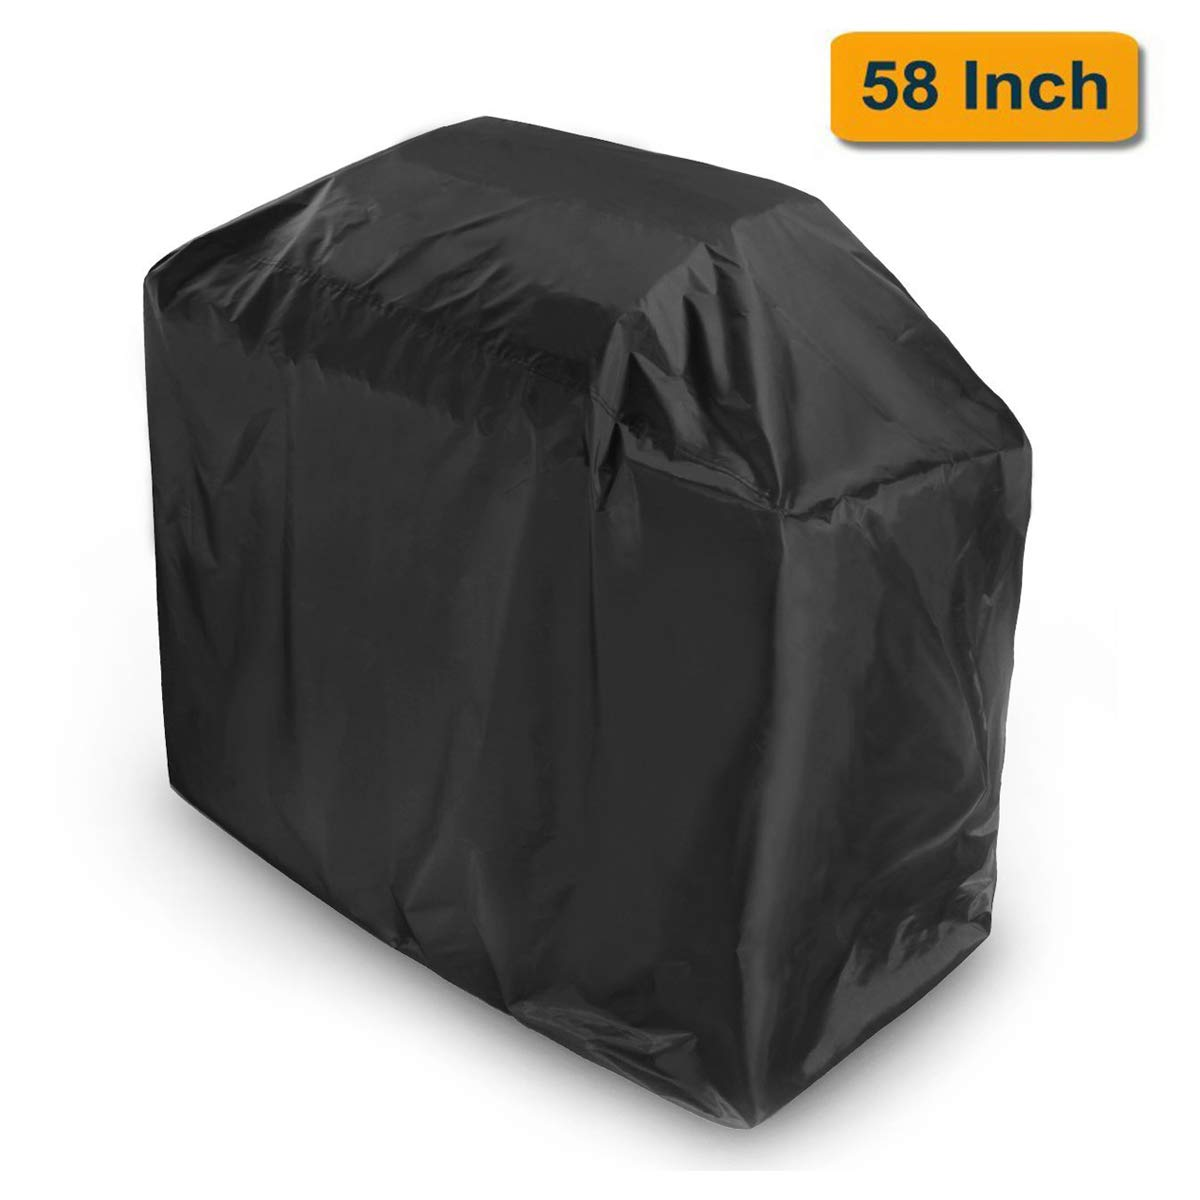 OUTDOOR DOIT Grill Cover 58 Inch, BBQ Cover, Heavy Duty Waterproof UV Protected Crack Resistant, Light Weight Easy Folding for Outdoor Most Brands Grill, Weber, Kenmore by OUTDOOR DOIT